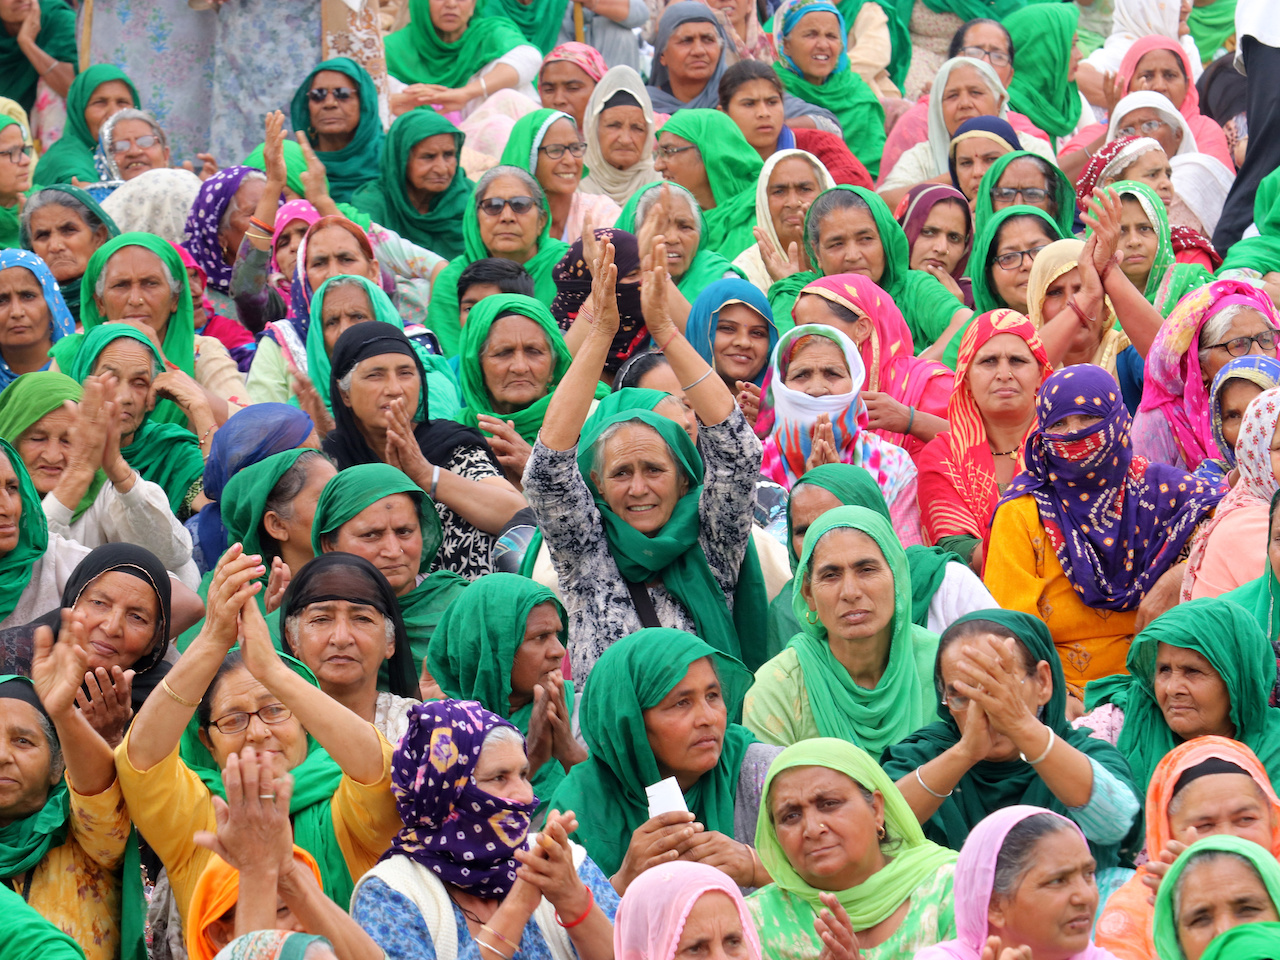 A photo of Indian women farmers from Haryana and Punjab clapping their hands on International Women's Day, during ongoing protests against new agricultural laws.